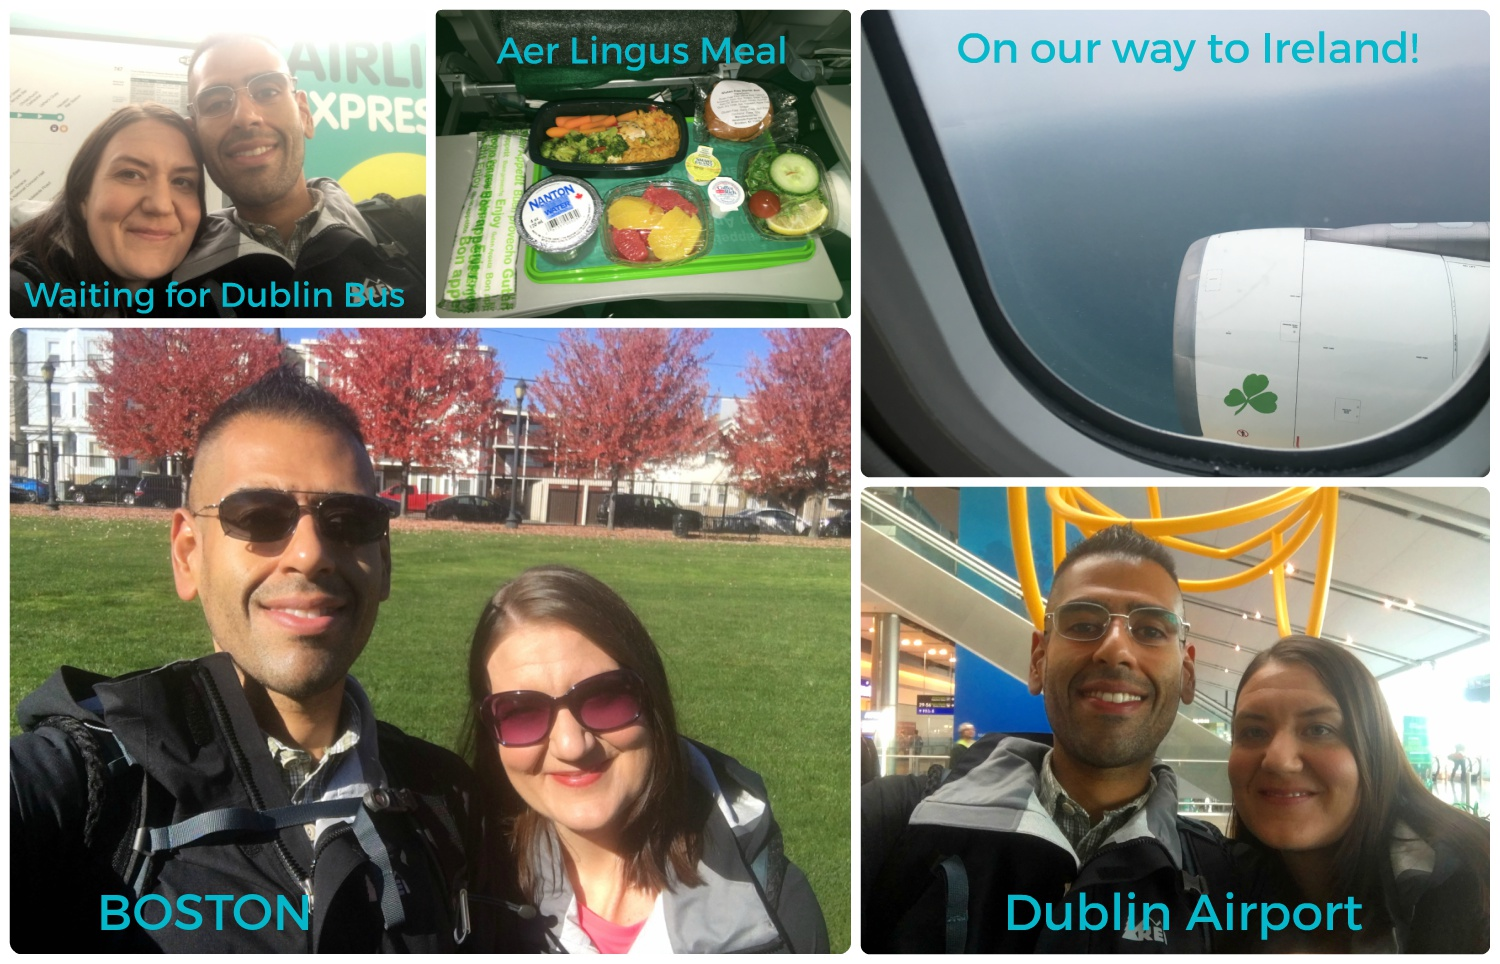 On our way to and arriving in Dublin, Ireland